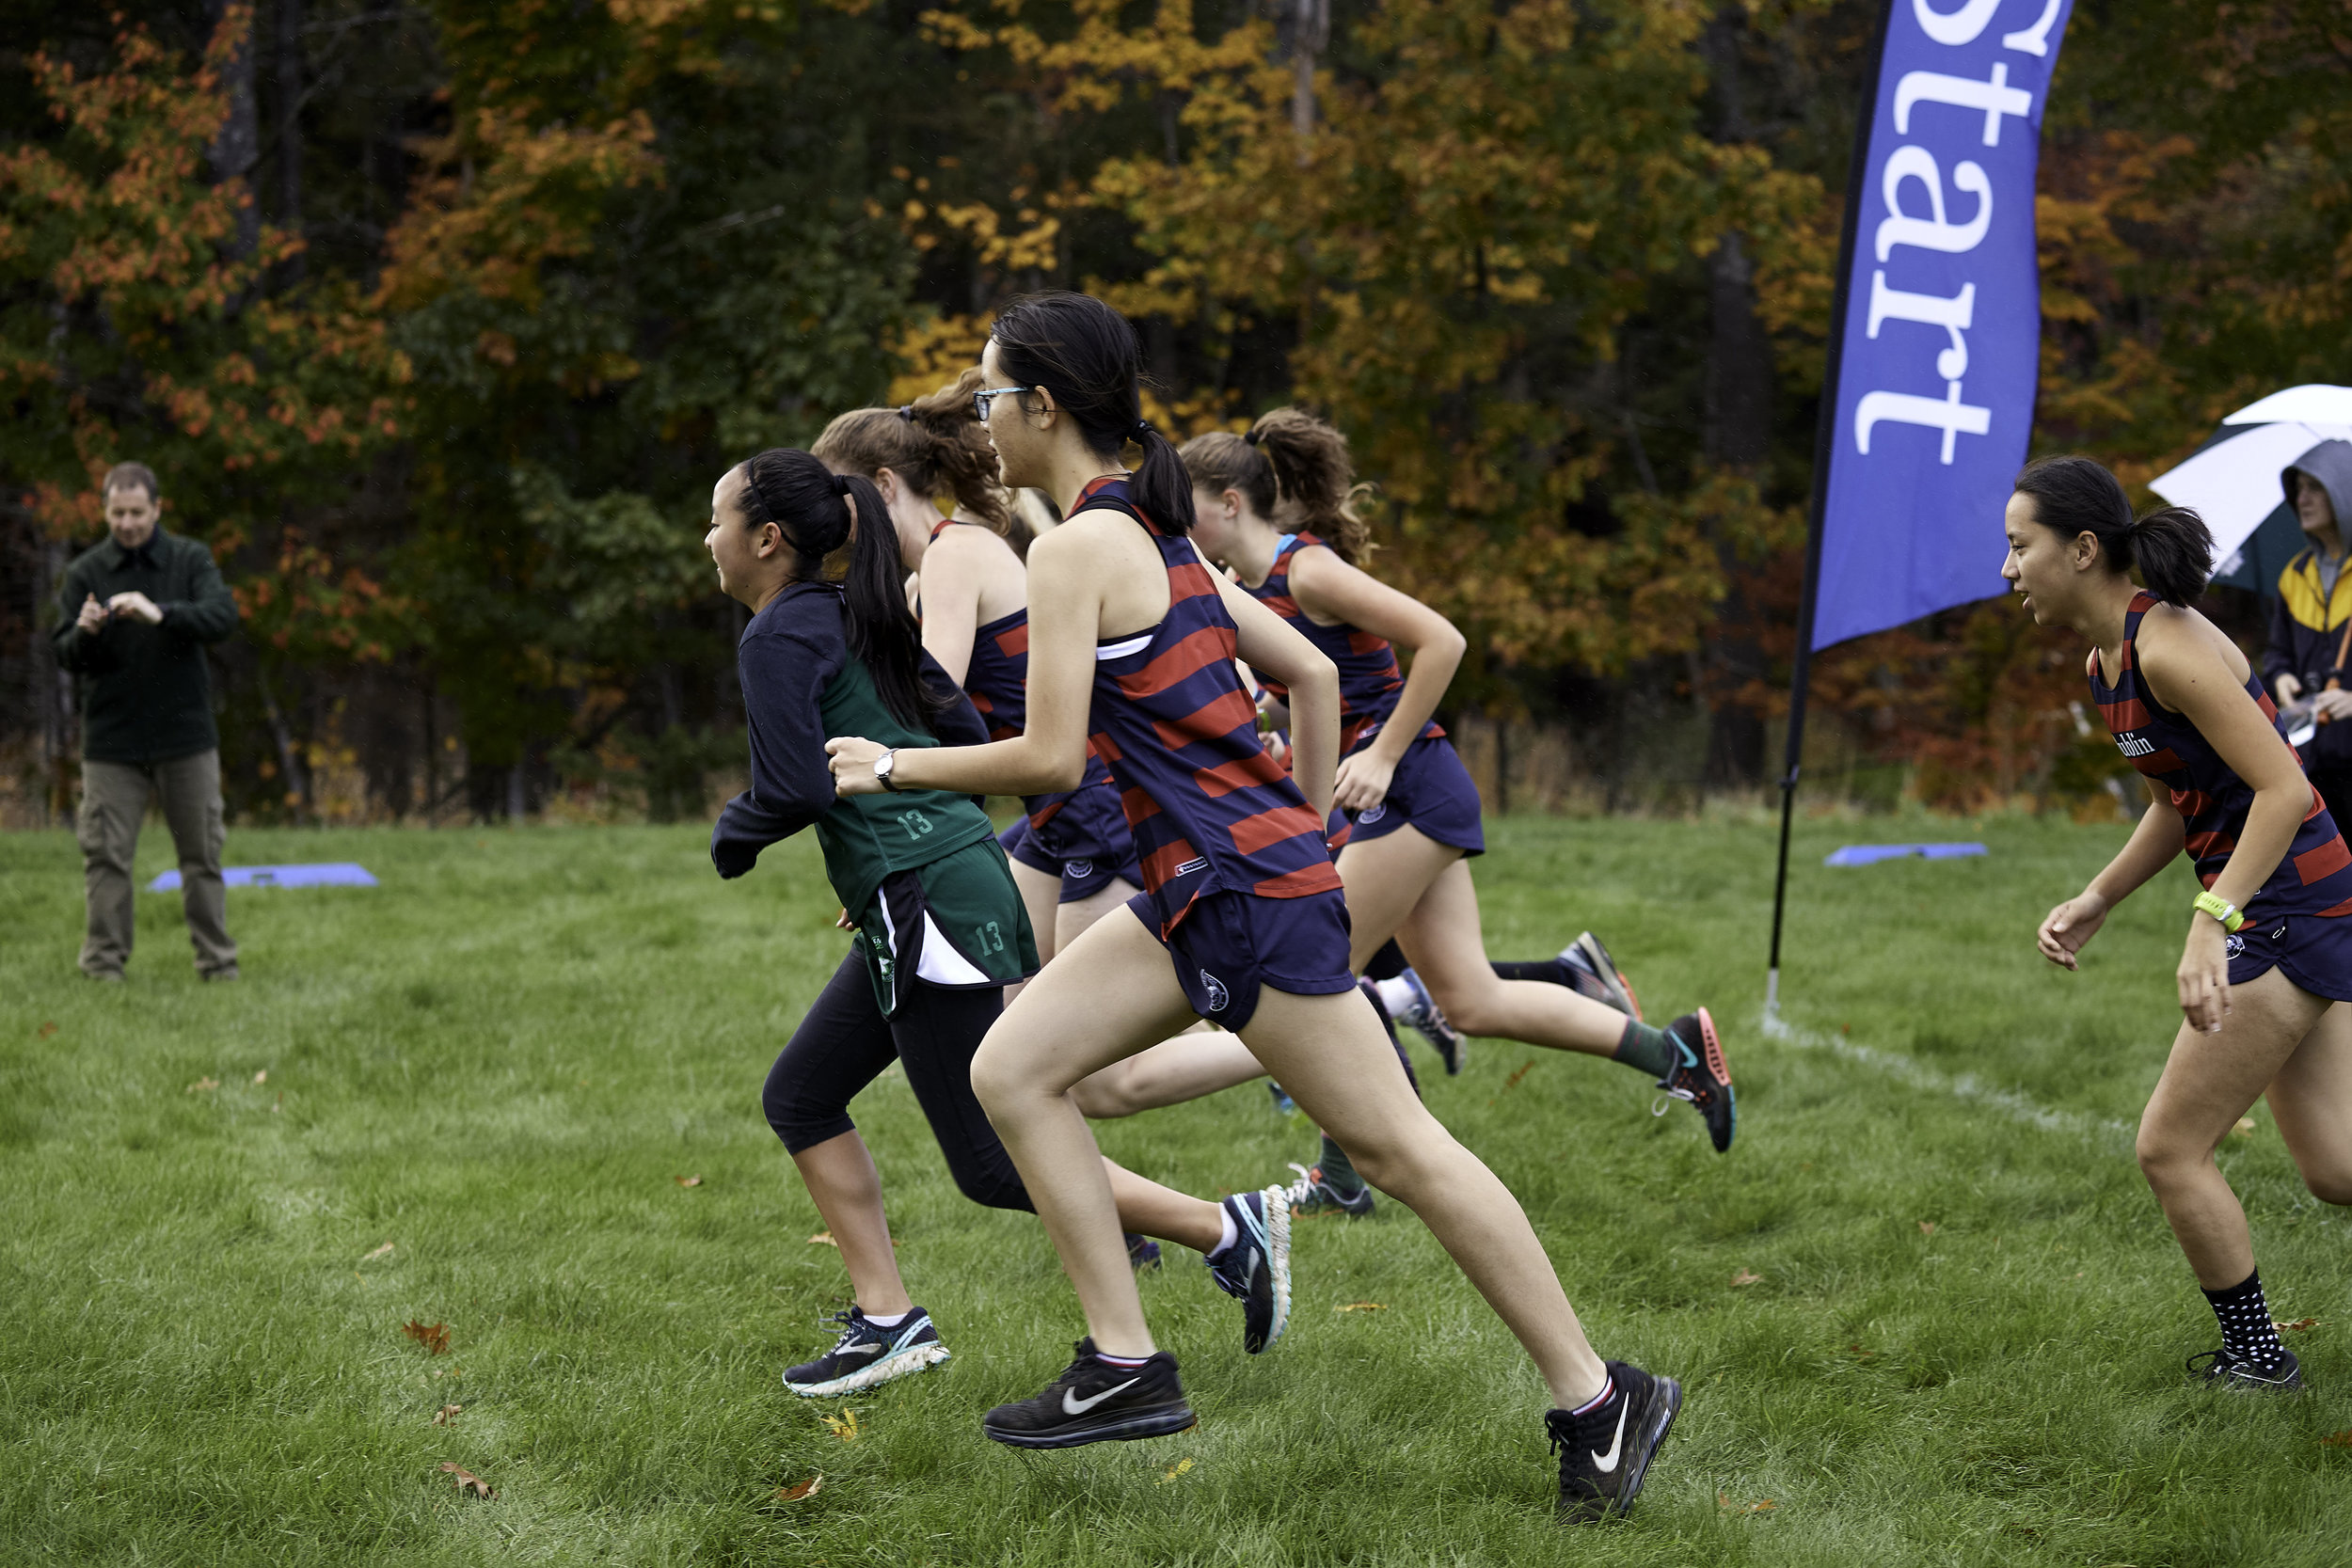 Dublion Invitational - October 12, 2018 - 136488.jpg